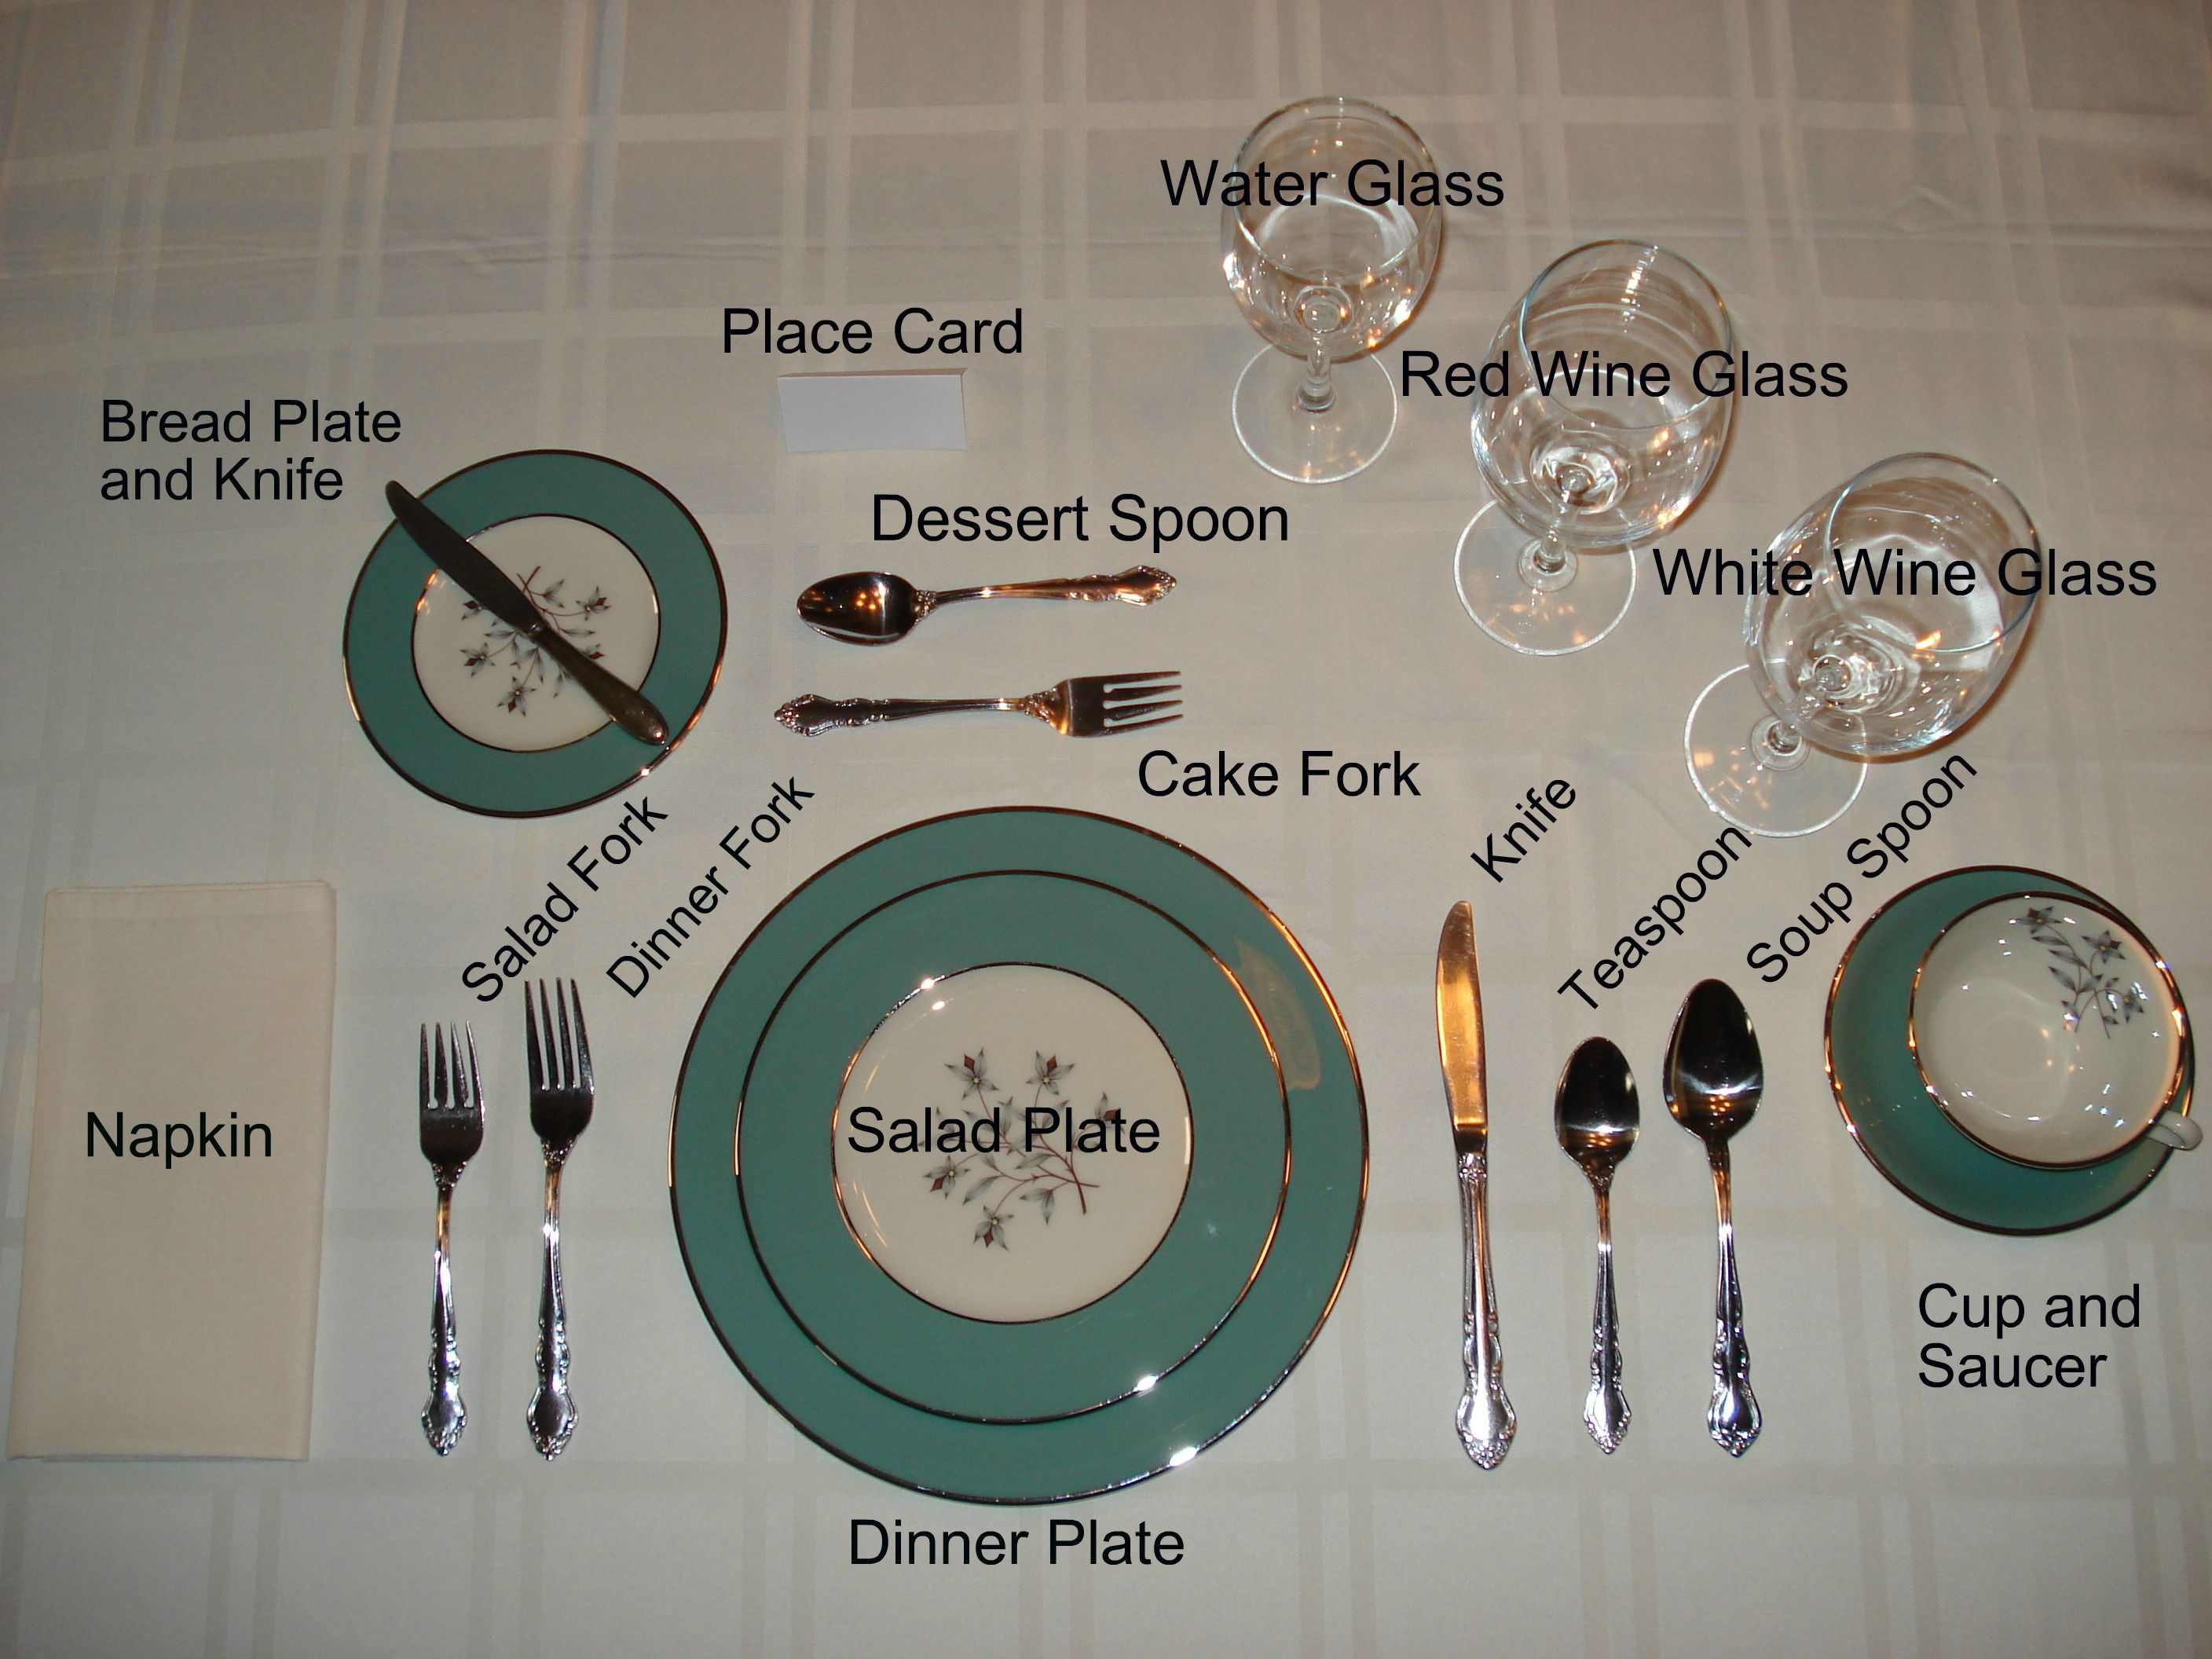 Table Setting cheat sheet: how to set a table | formal dinner, party places and